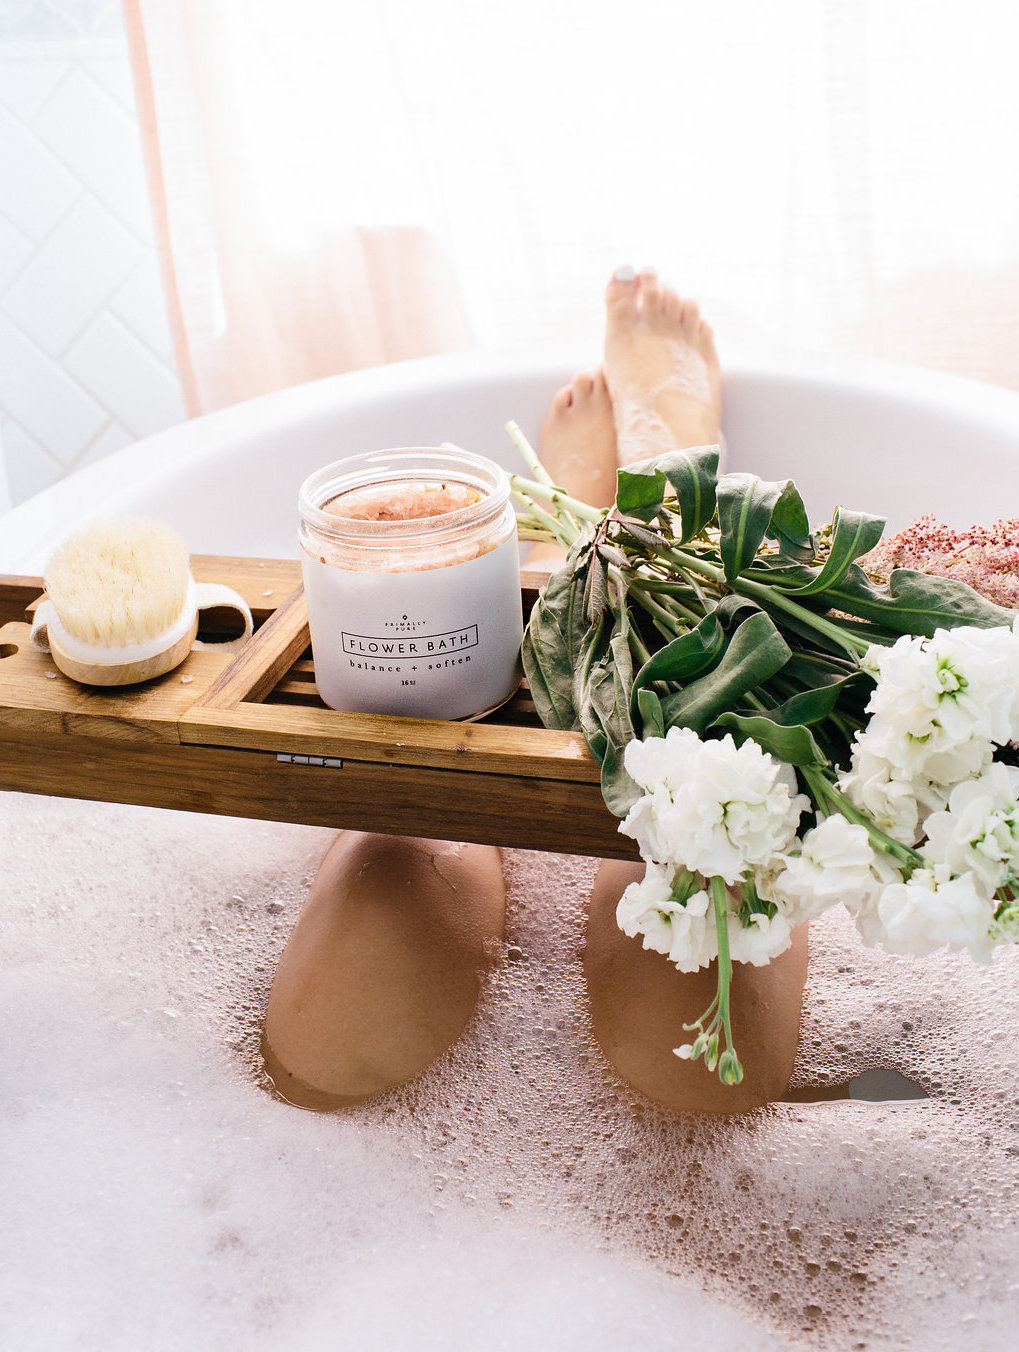 spa day at home - bubble bath with a wooden tub stand with flowers and bath soak